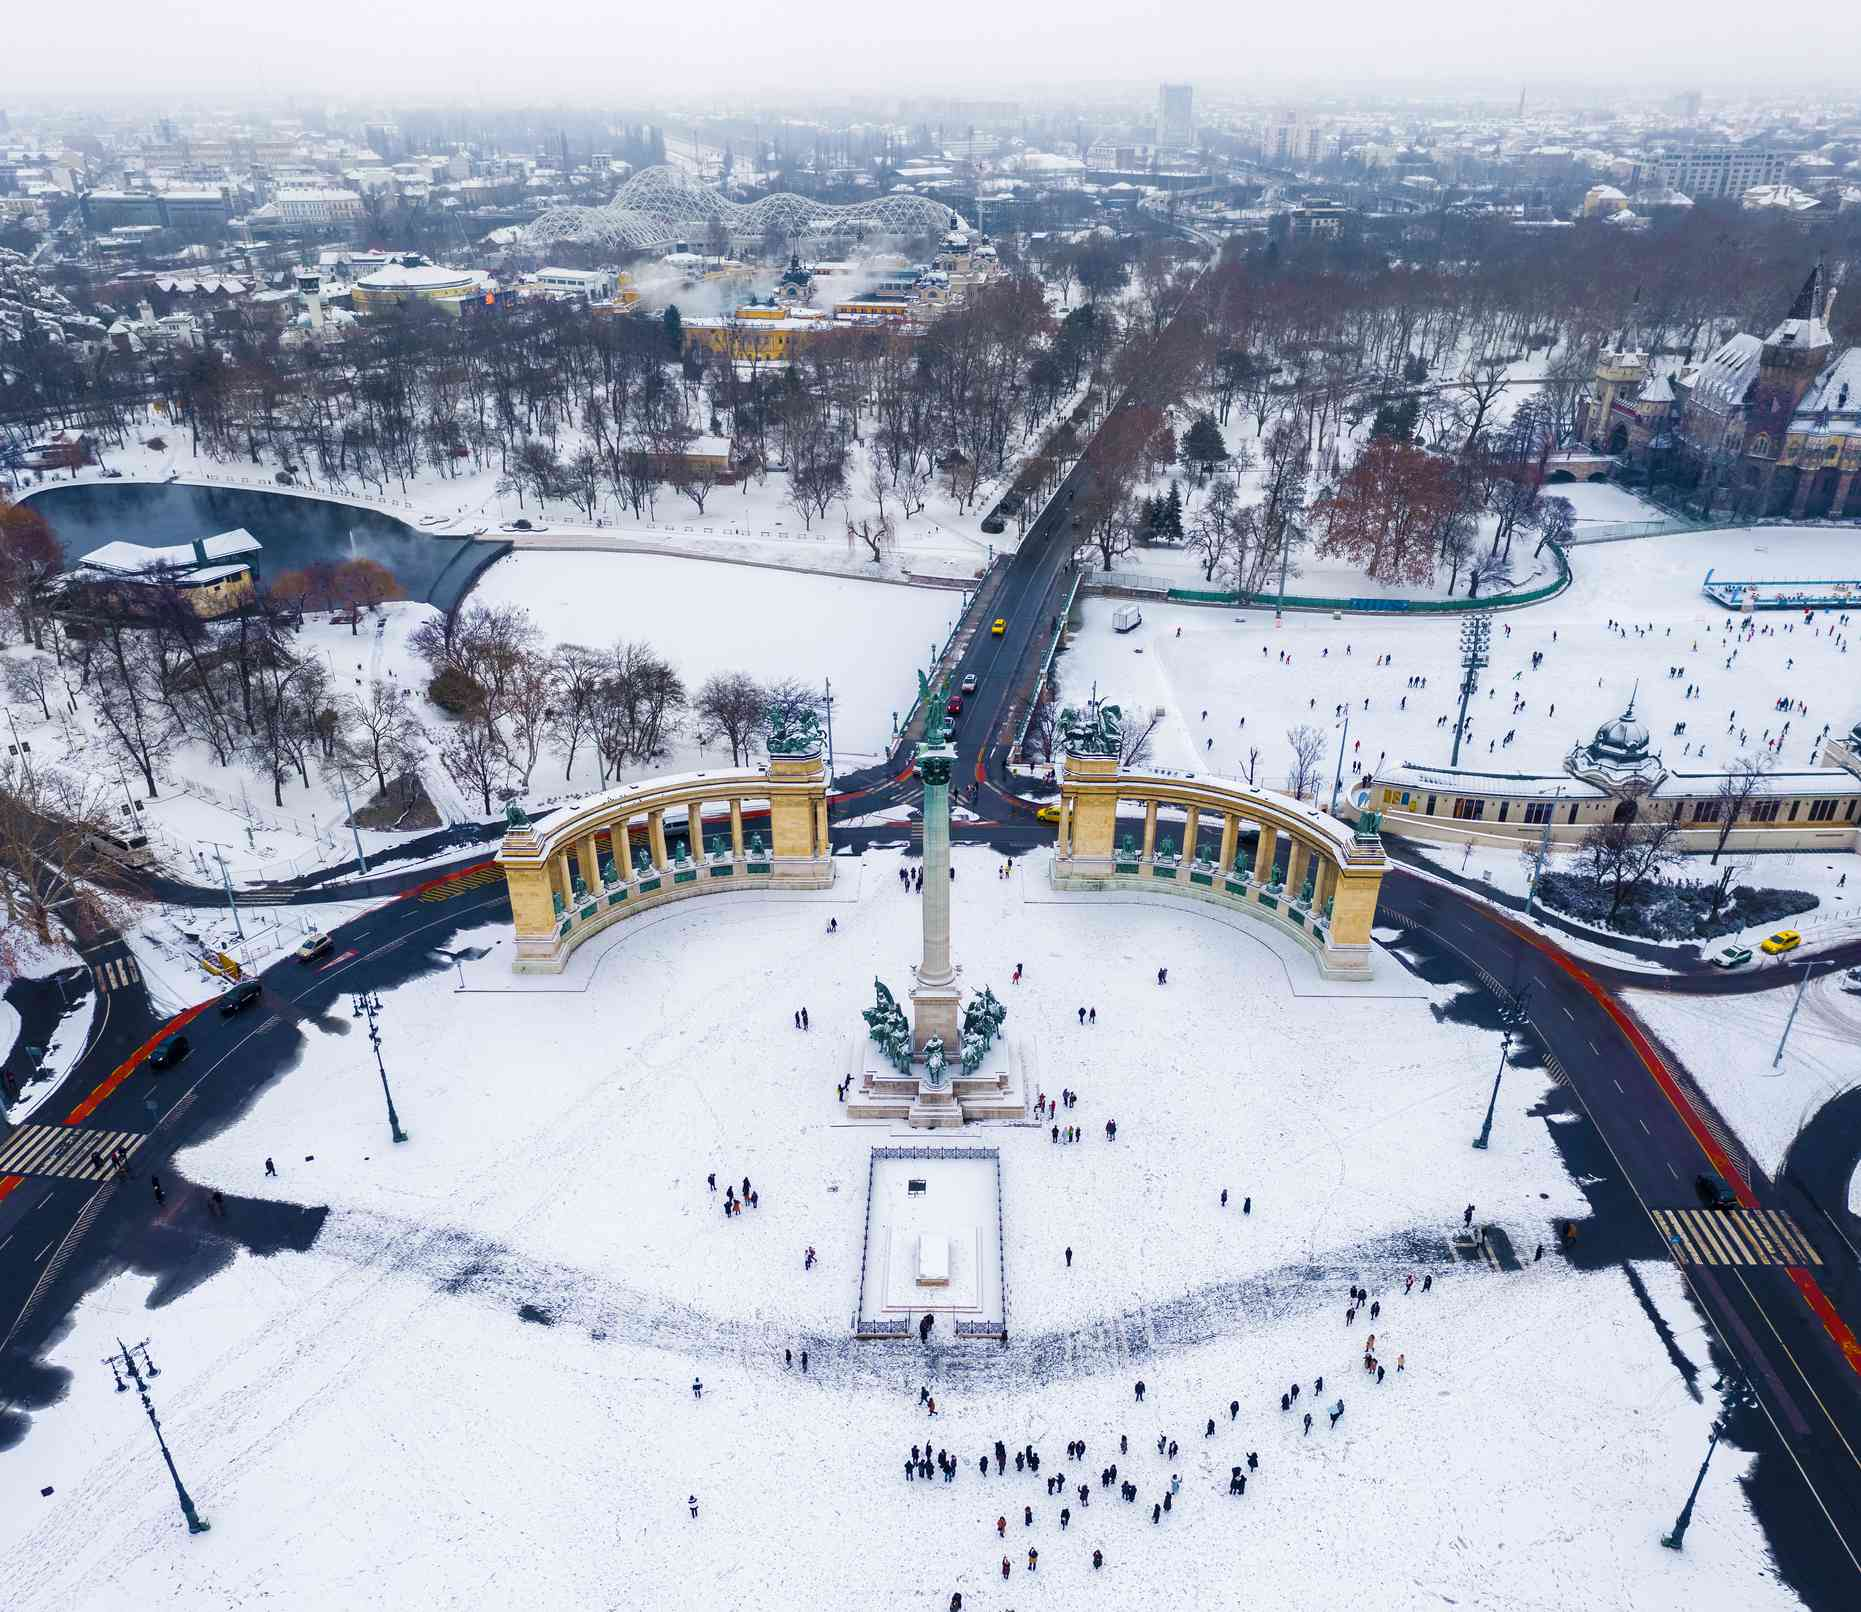 Budapest, Hungary - Snowy Heroes' Square and Millennium Monument from above on a cold winter day with City Park, Szechenyi Thermal Bath and ice rink at background